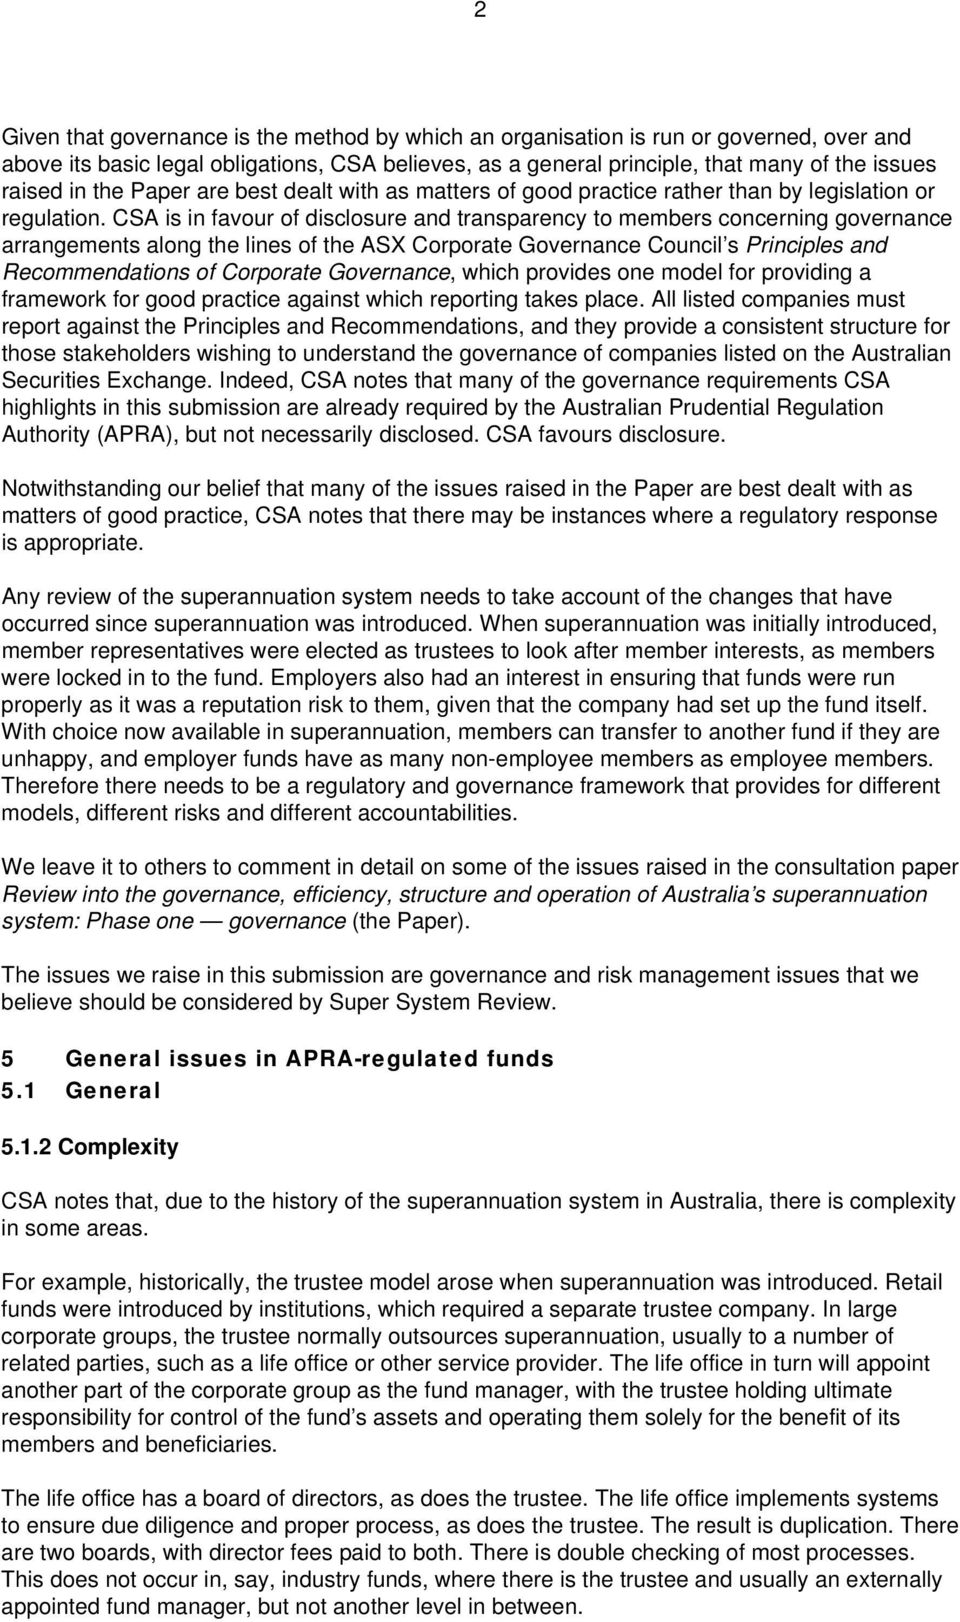 CSA is in favour of disclosure and transparency to members concerning governance arrangements along the lines of the ASX Corporate Governance Council s Principles and Recommendations of Corporate